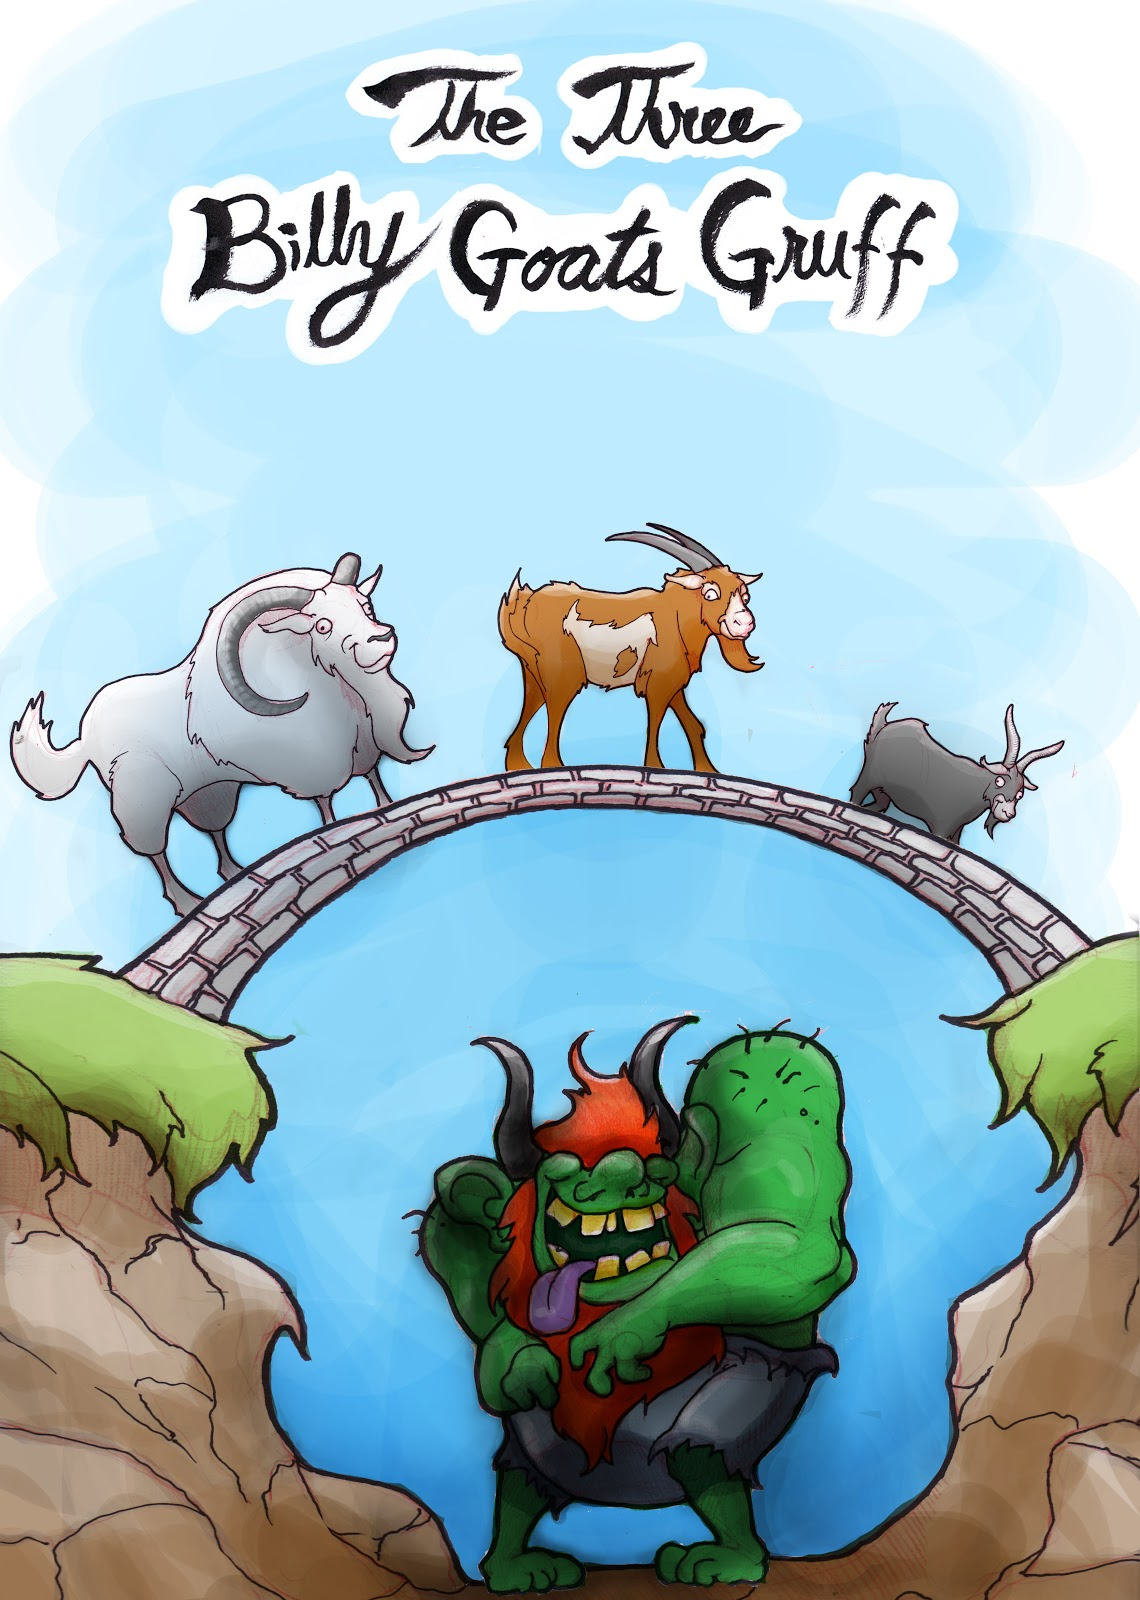 Worksheet Three Billy Goats Gruff Story pin by myth witch on three billy goats gruff pinterest